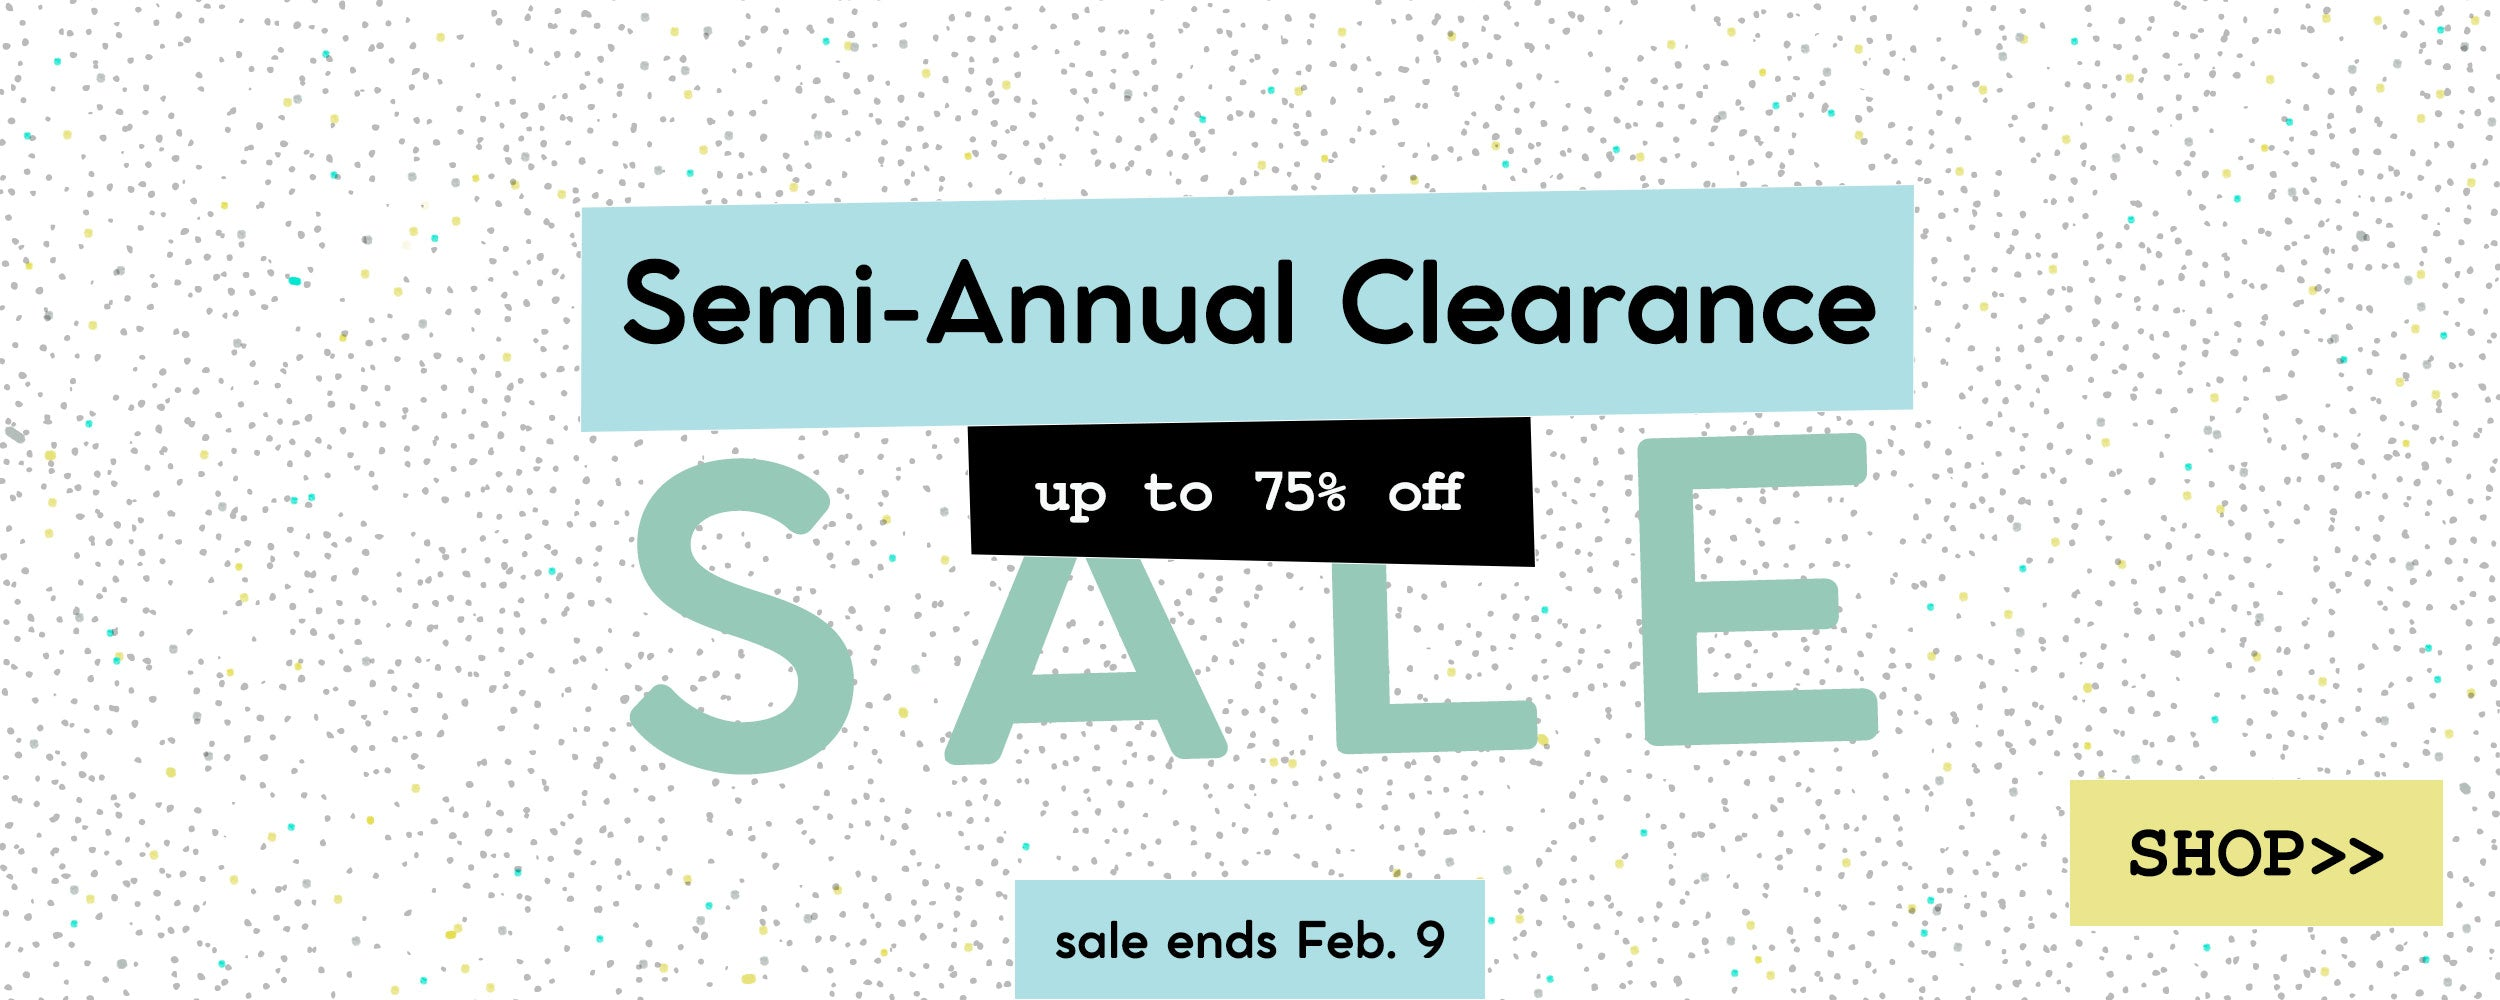 Semi-Annual Clearance Sale - shop fabric, precuts, patterns, and notions - up to 75% off